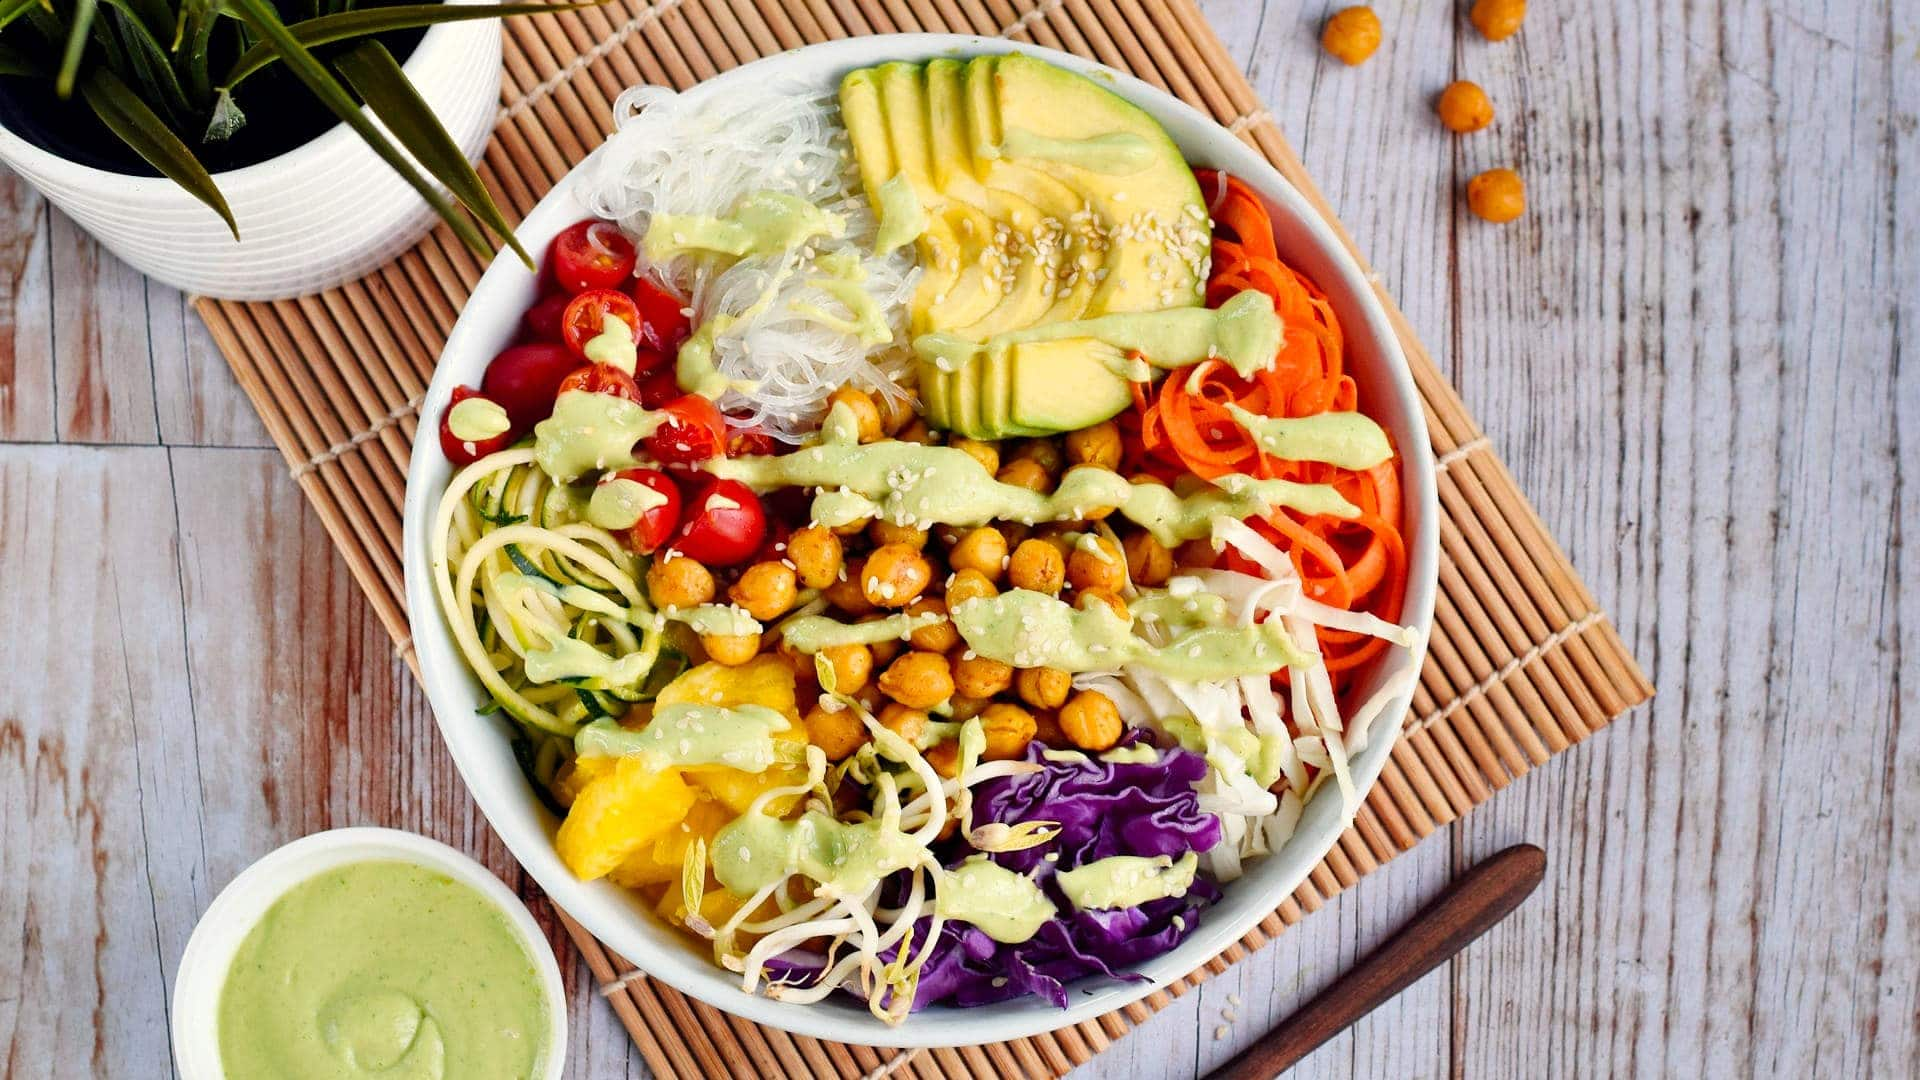 healthy salad with chickpeas avocado colorful veggies and green dressing on the side